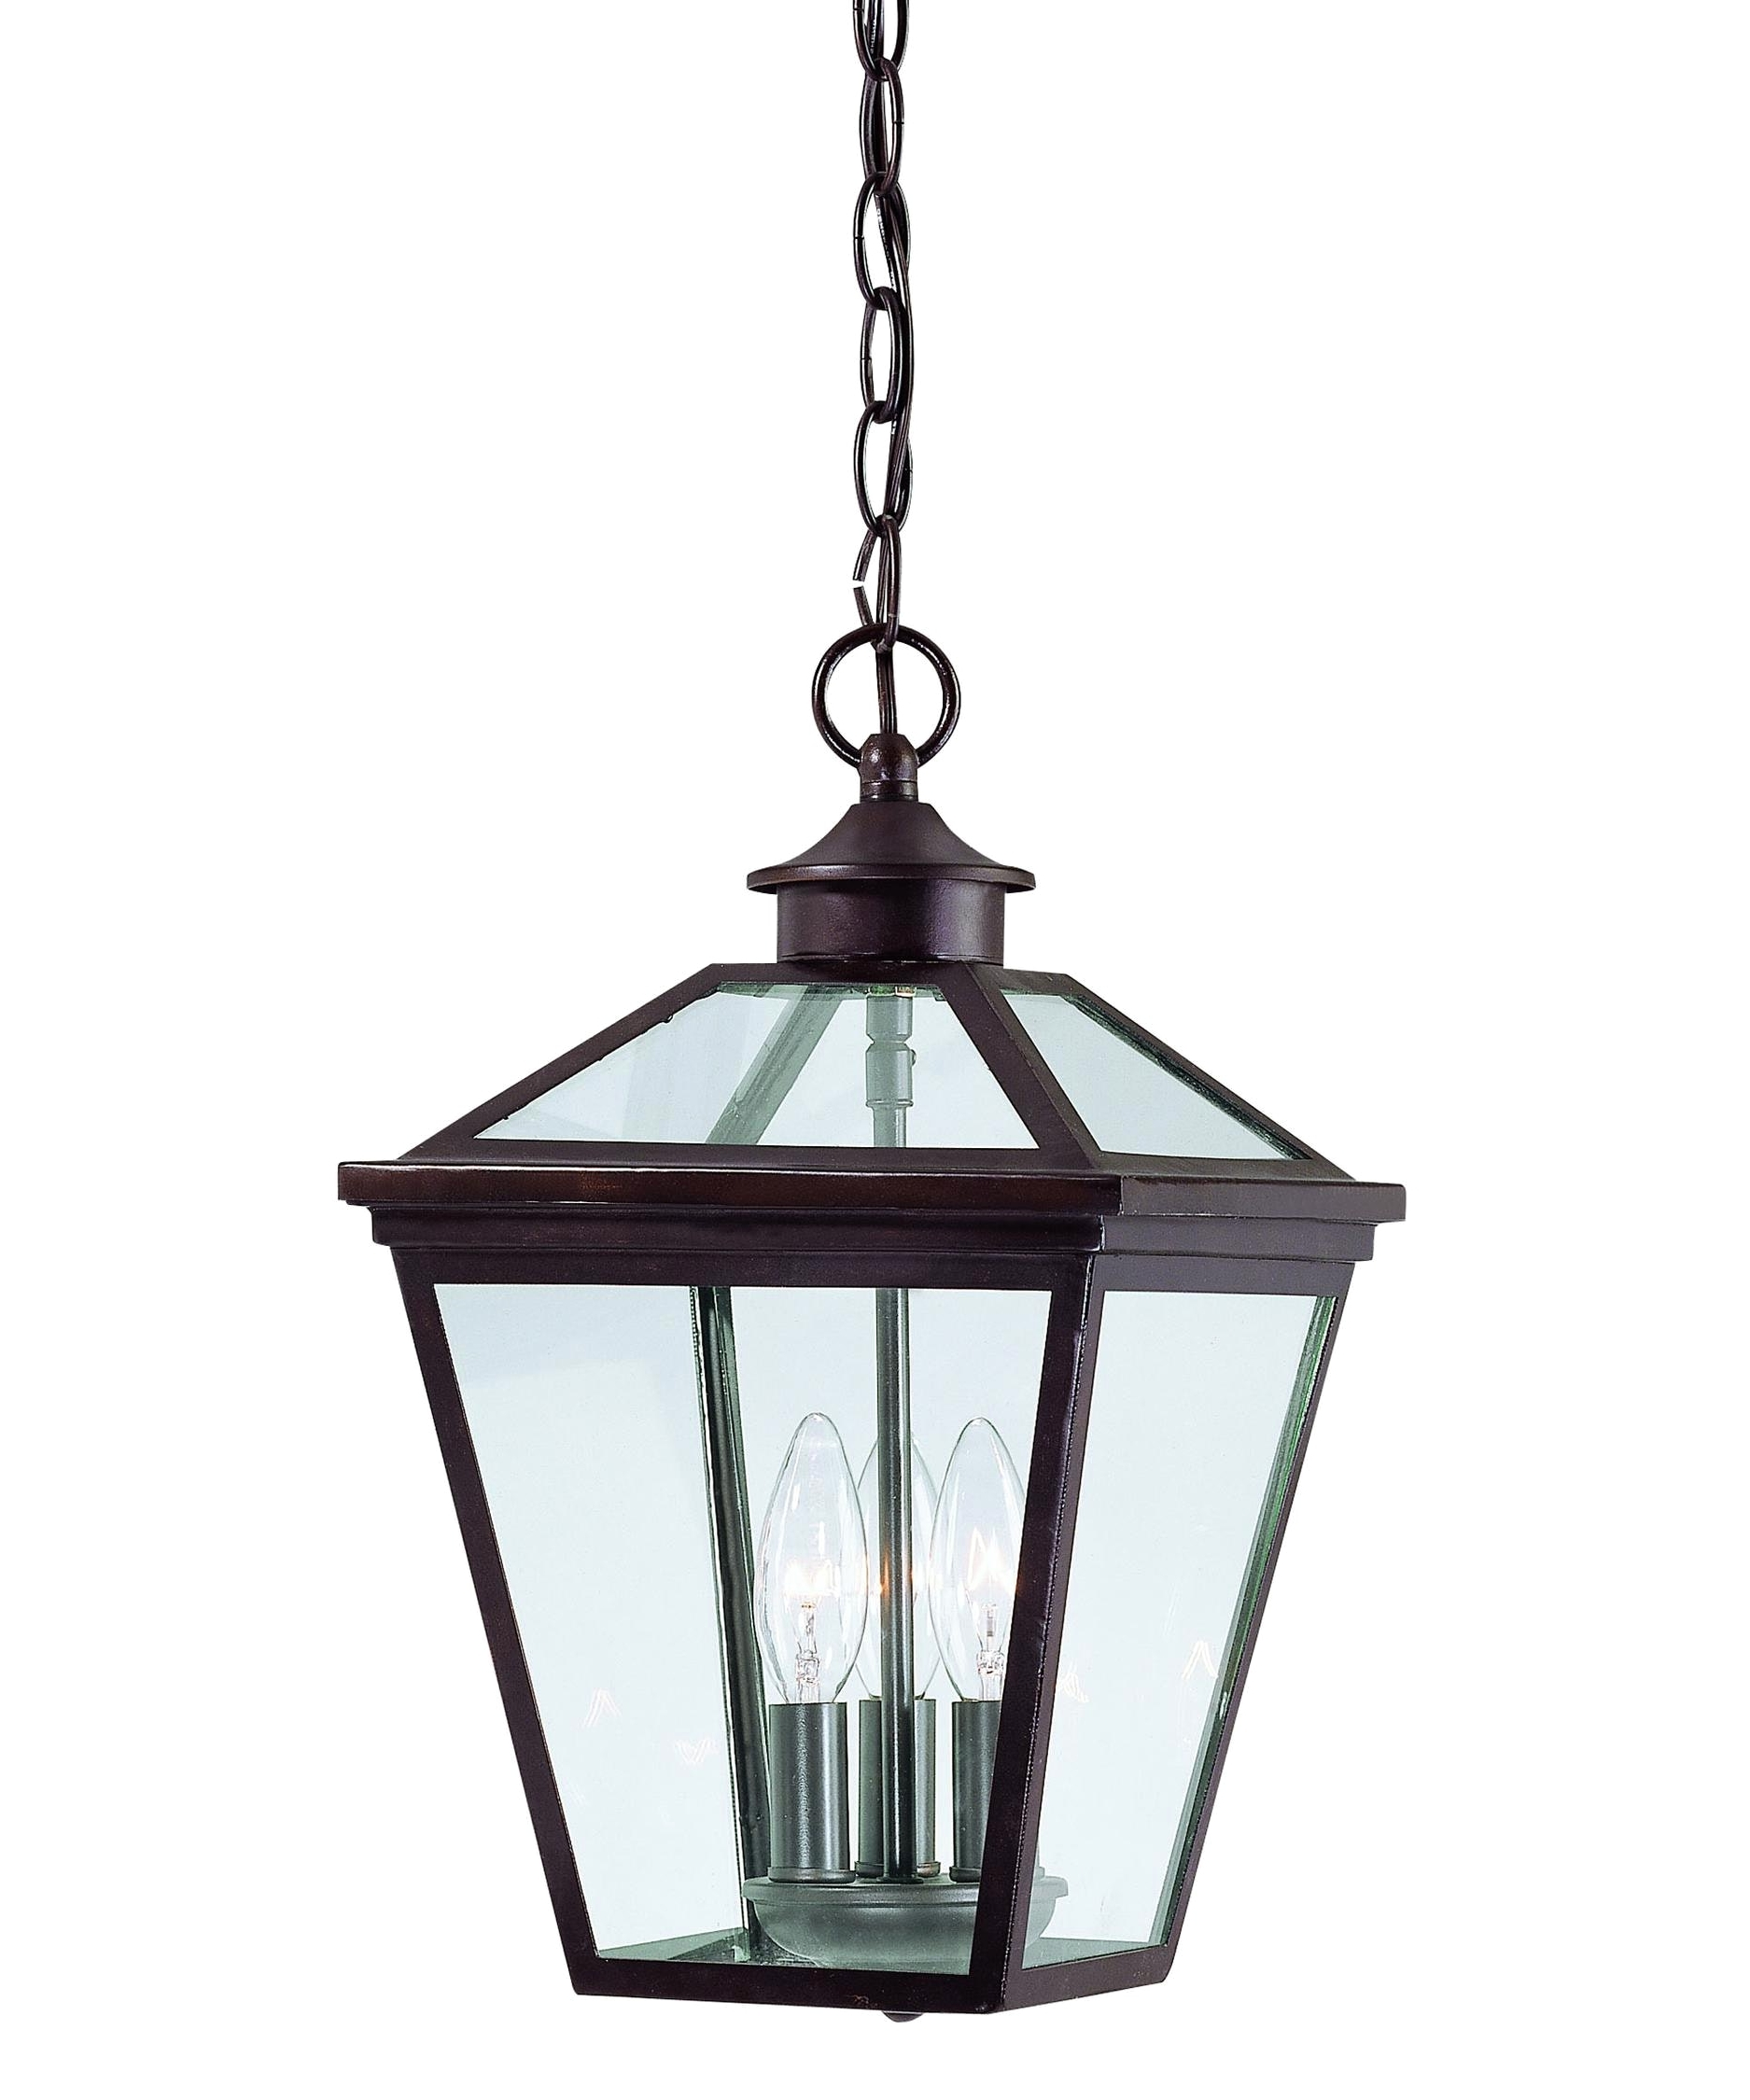 Fashionable Top Outdoor Pendant Lighting Home Depot Ideas (View 9 of 20)